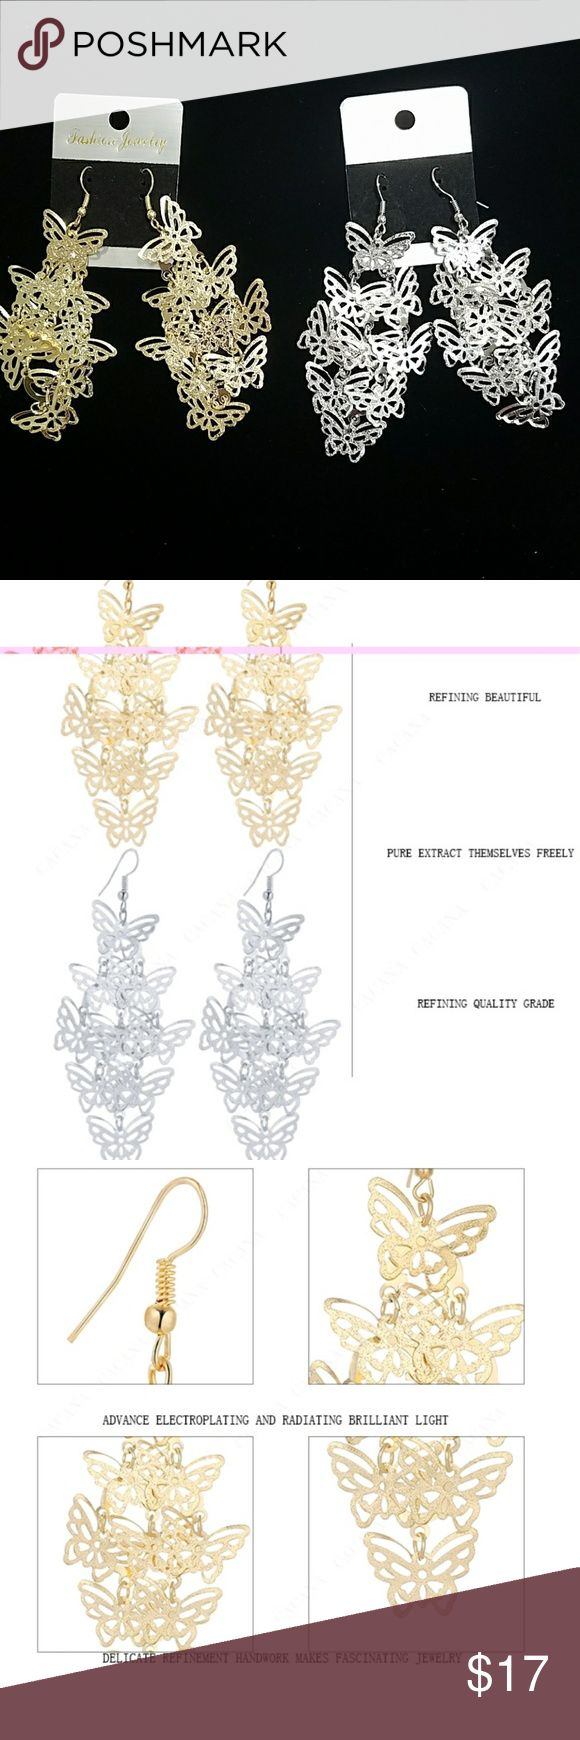 ANY 4 PAIRS FOR $15! BUTTERFLY DANGLING EARRINGS! Design consists of multiple dangling butterflies. Earrings are not heavy so they won't make you feel weighted down & no worries about stretching out your earlobes! Earrings are thin, lightweight Alloy metal. They are priced great! Bundle & save on shipping! Choose Gold or Silver in Options. Once you add 4 pairs to your bundle, submit offer for $15 & it will be accepted!  Gold stock# 124 Silver Stock # 224 Jewelry Earrings